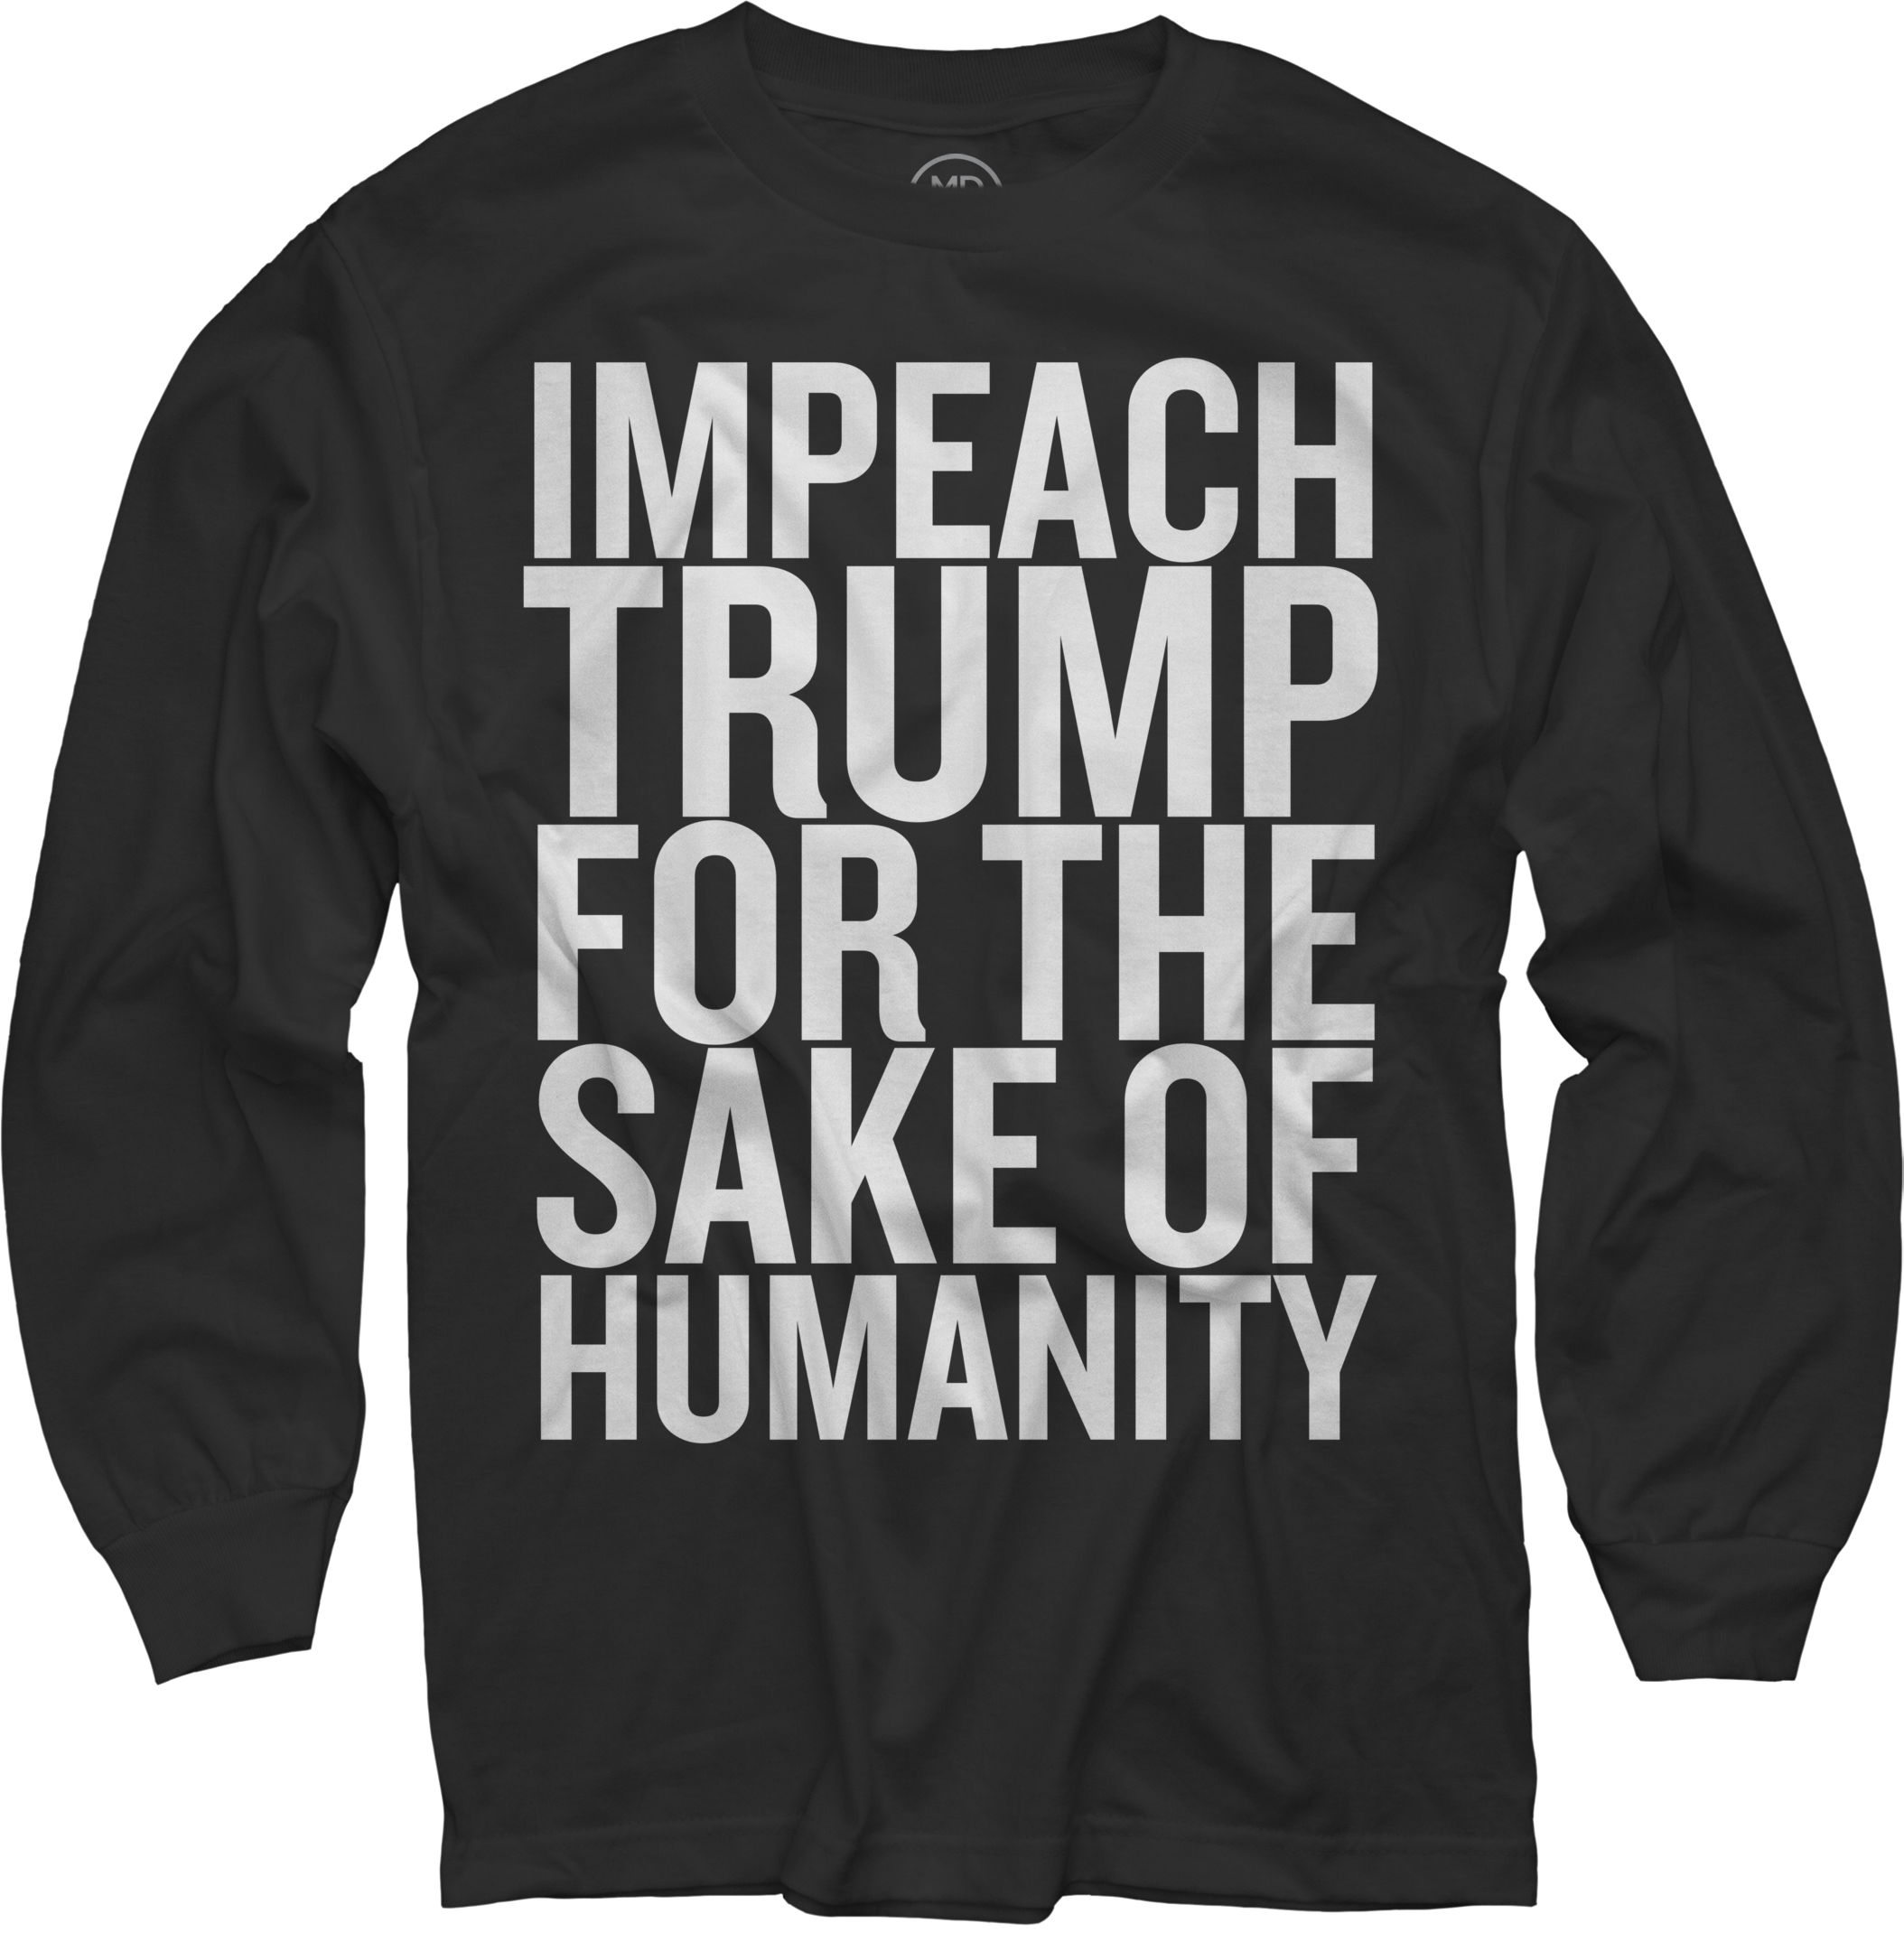 IMPEACH TRUMP long sleeve tee (Mens sizing)